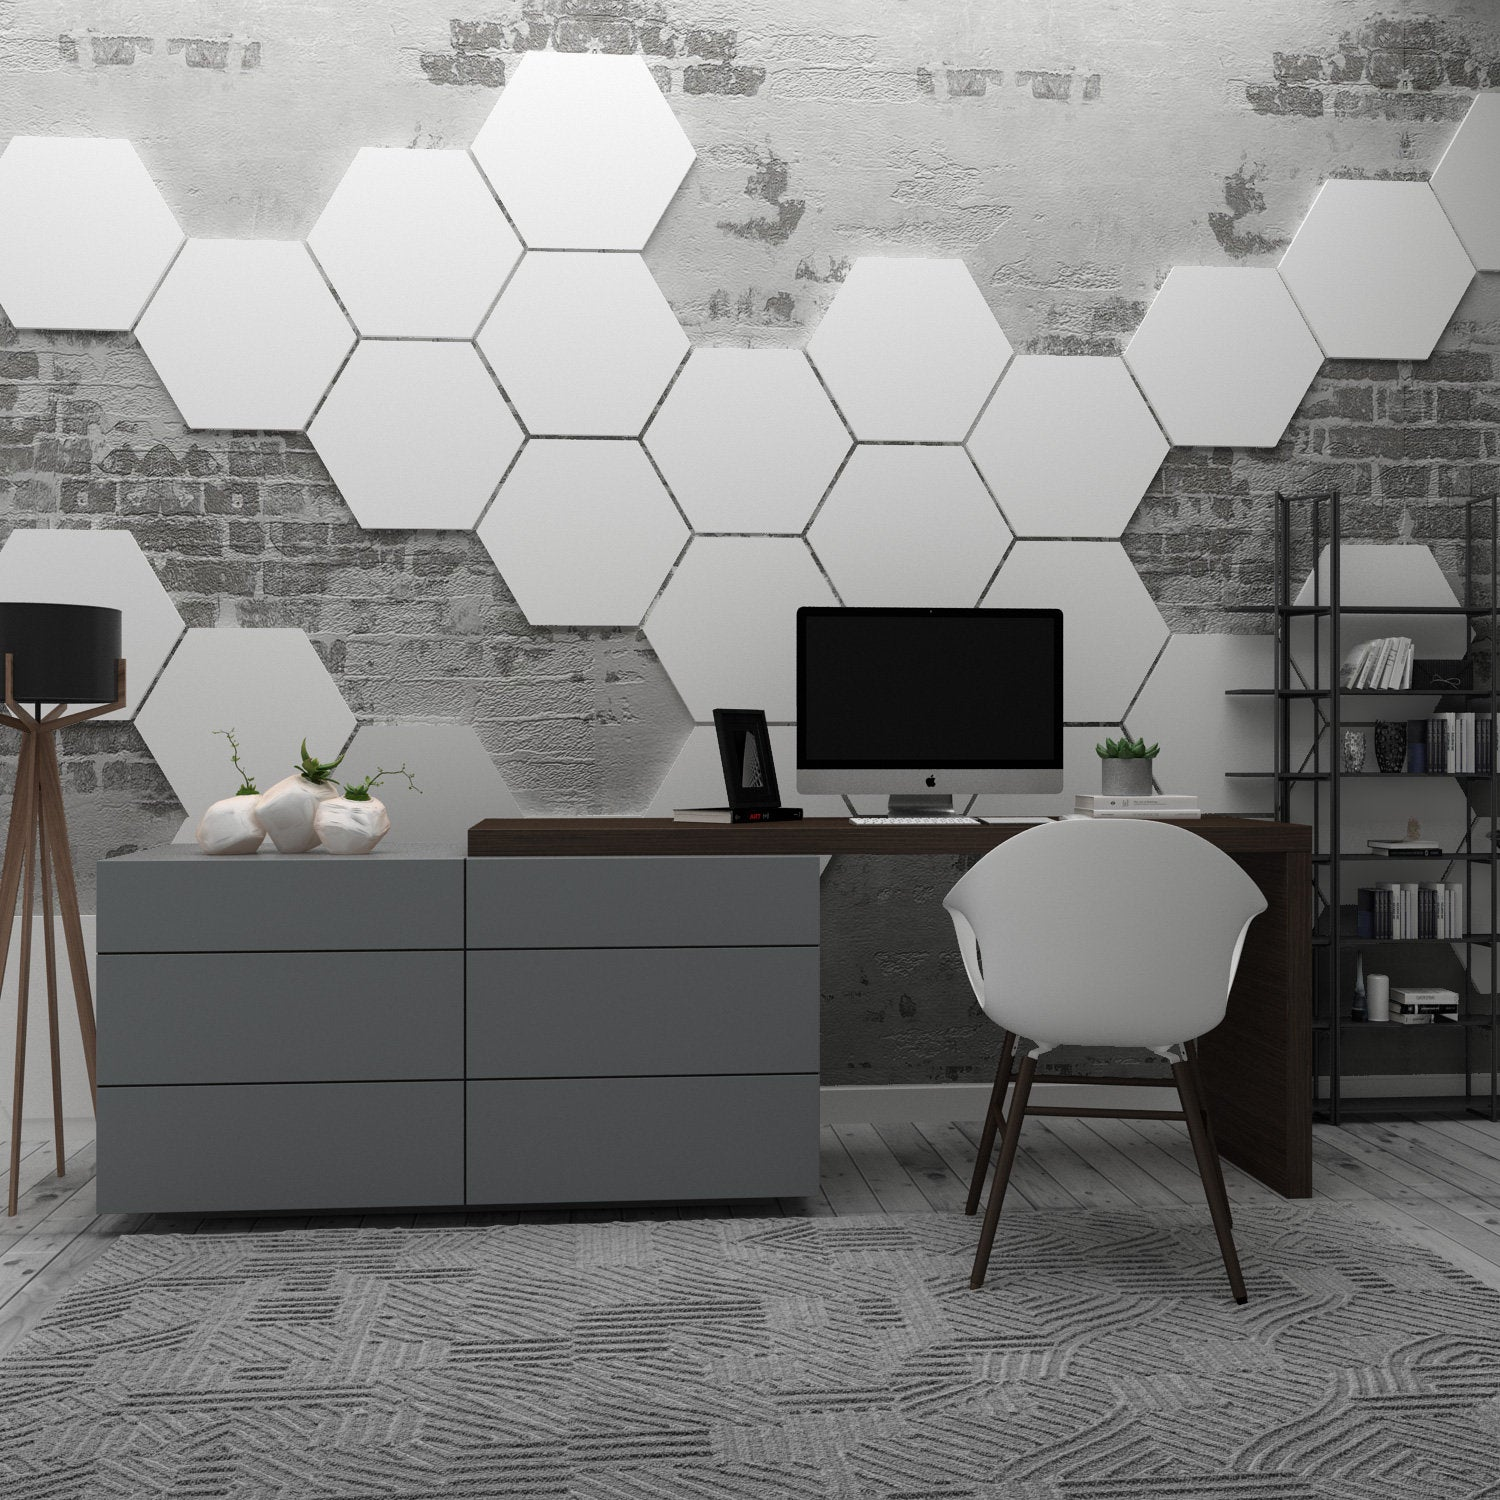 Hexagon Wall Decor Pack 15